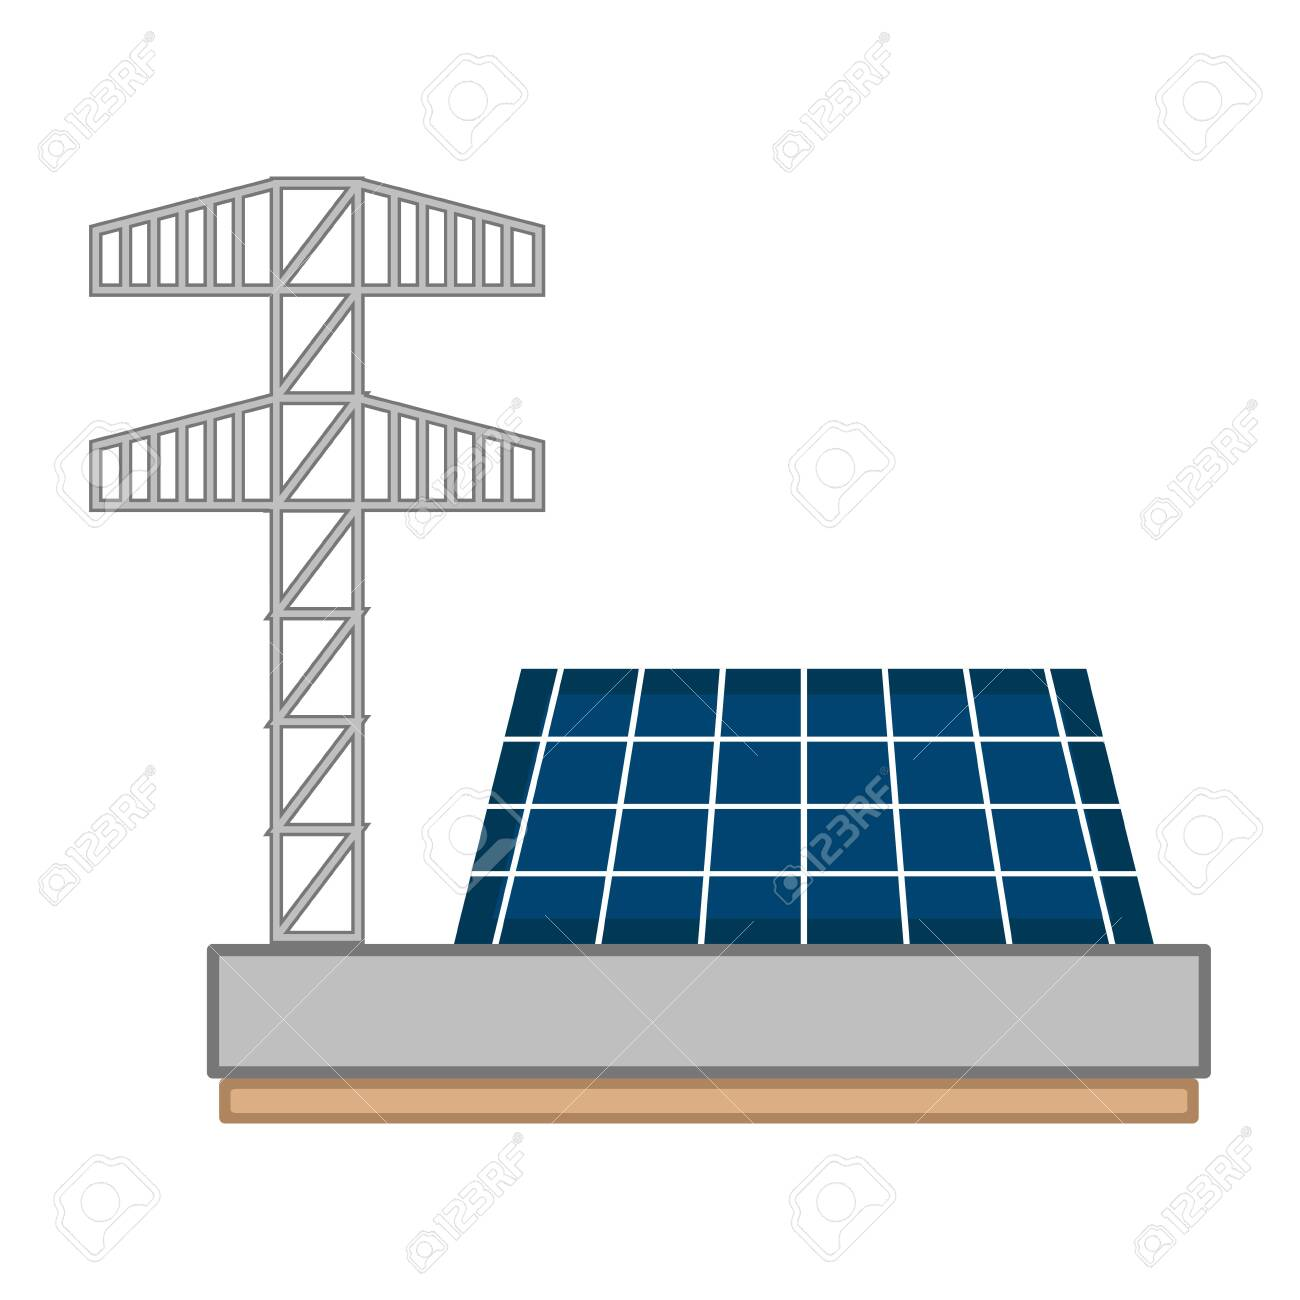 Solar Power Plant Image Vector Illustration Design Royalty Free Cliparts Vectors And Stock Illustration Image 124064574